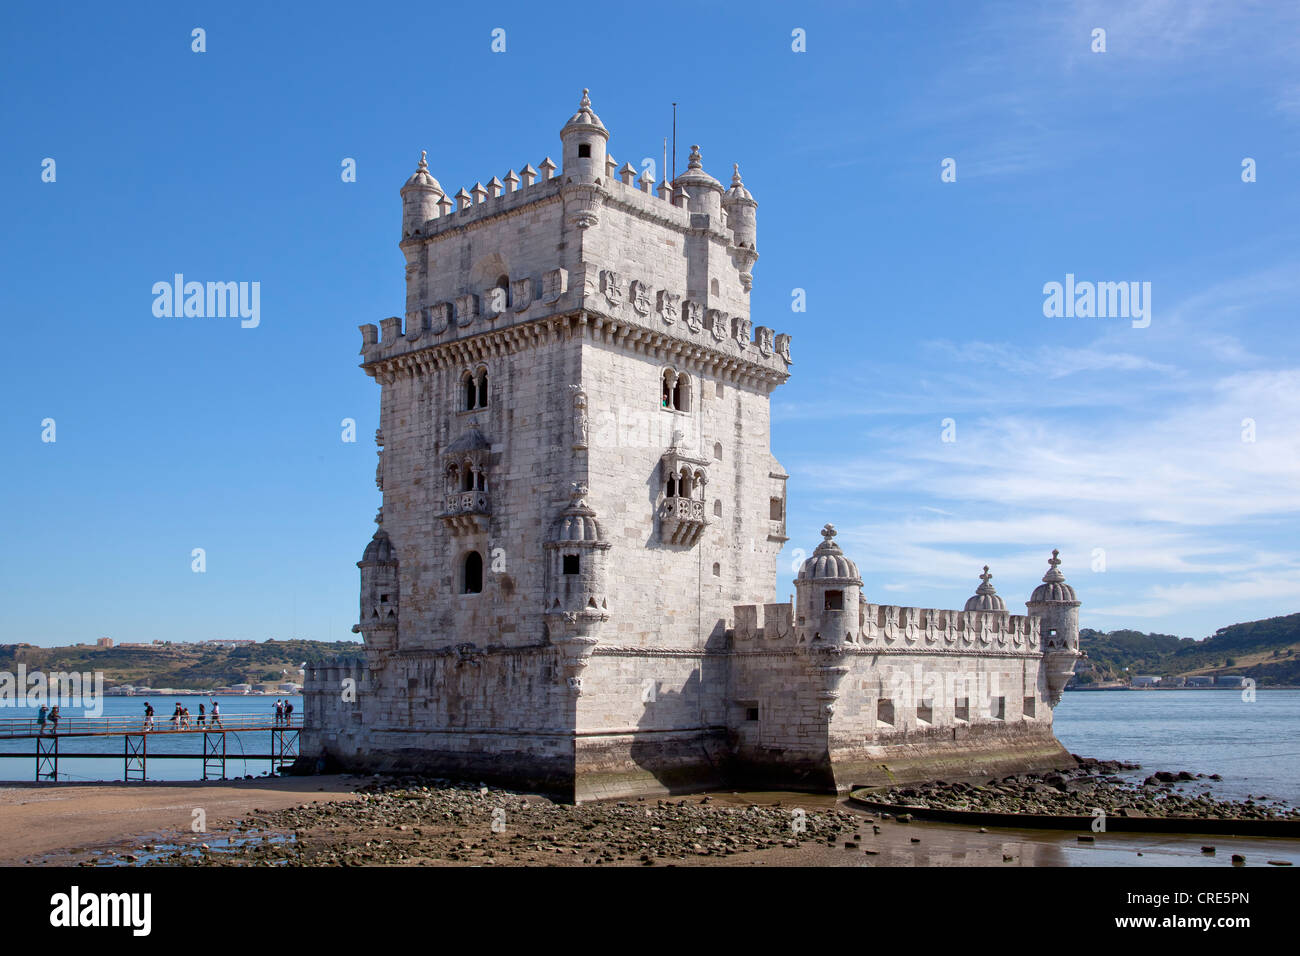 Torre de Belem, fortifications from the 16th Century, UNESCO World Heritage Site, at the mouth of the Rio Tejo River - Stock Image